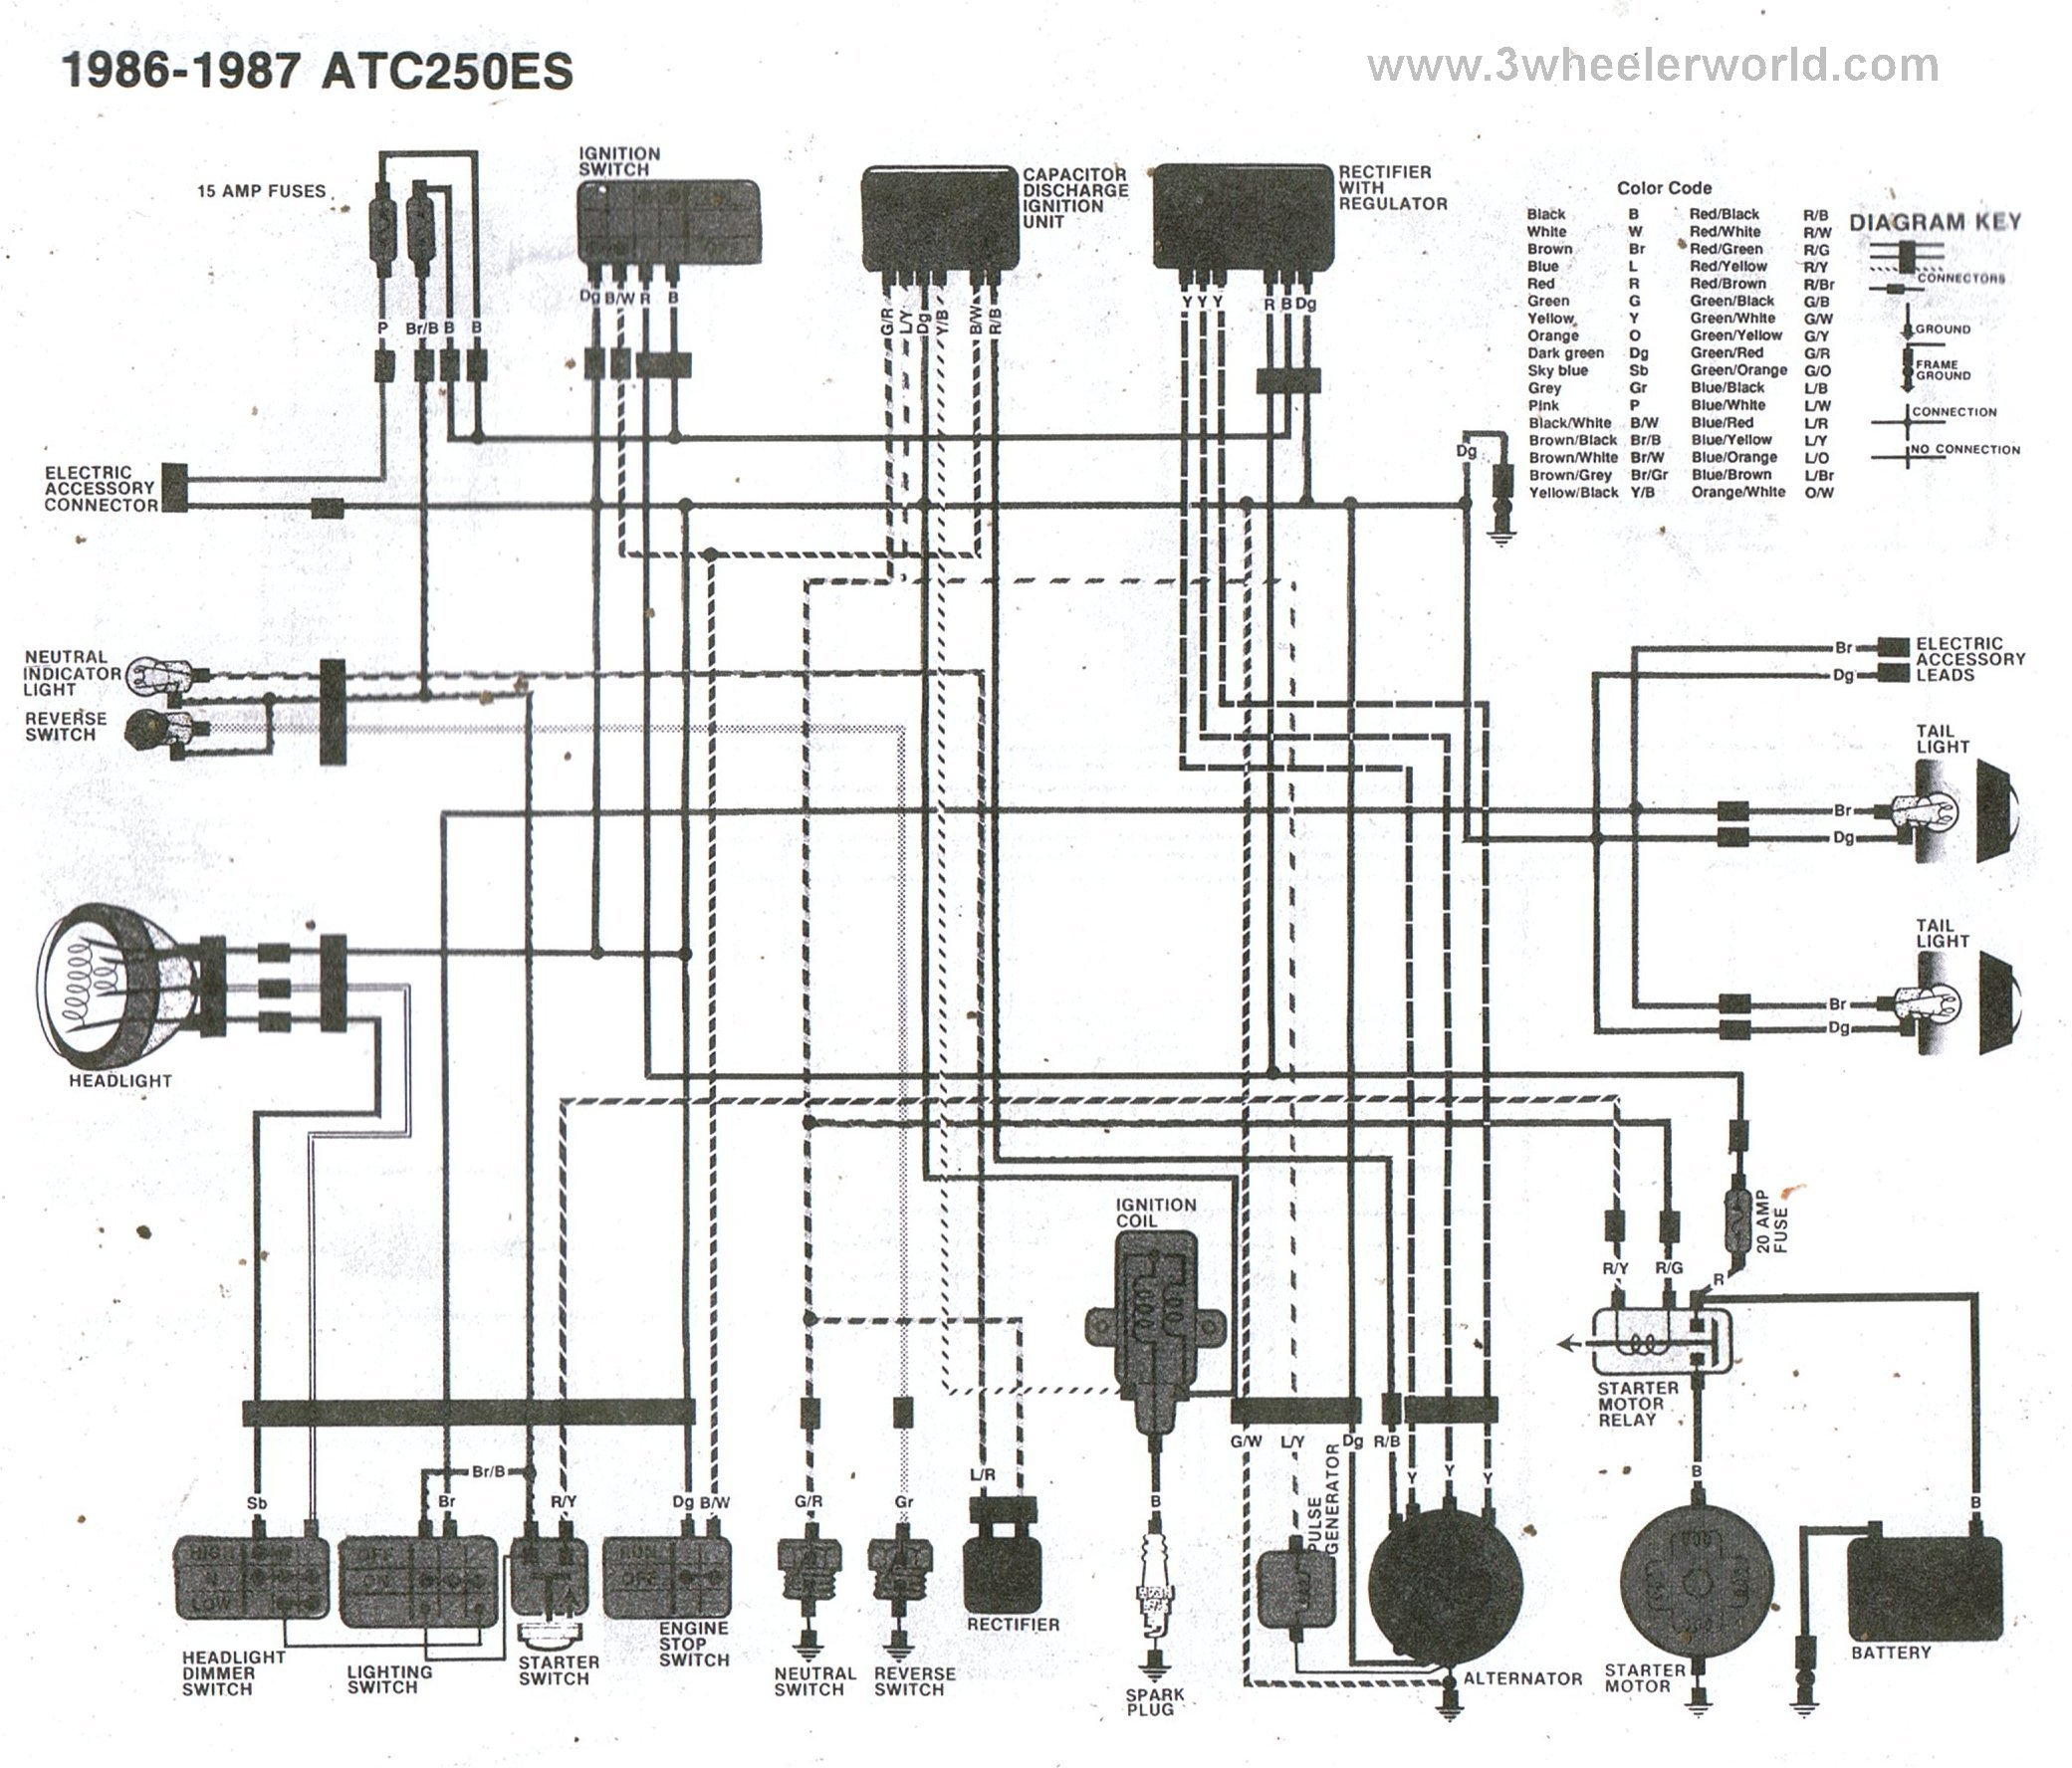 ATC250ESx86Thru87 honda atv 300 wiring diagram honda wiring diagrams instruction trx350 wiring diagram 1987 at gsmportal.co